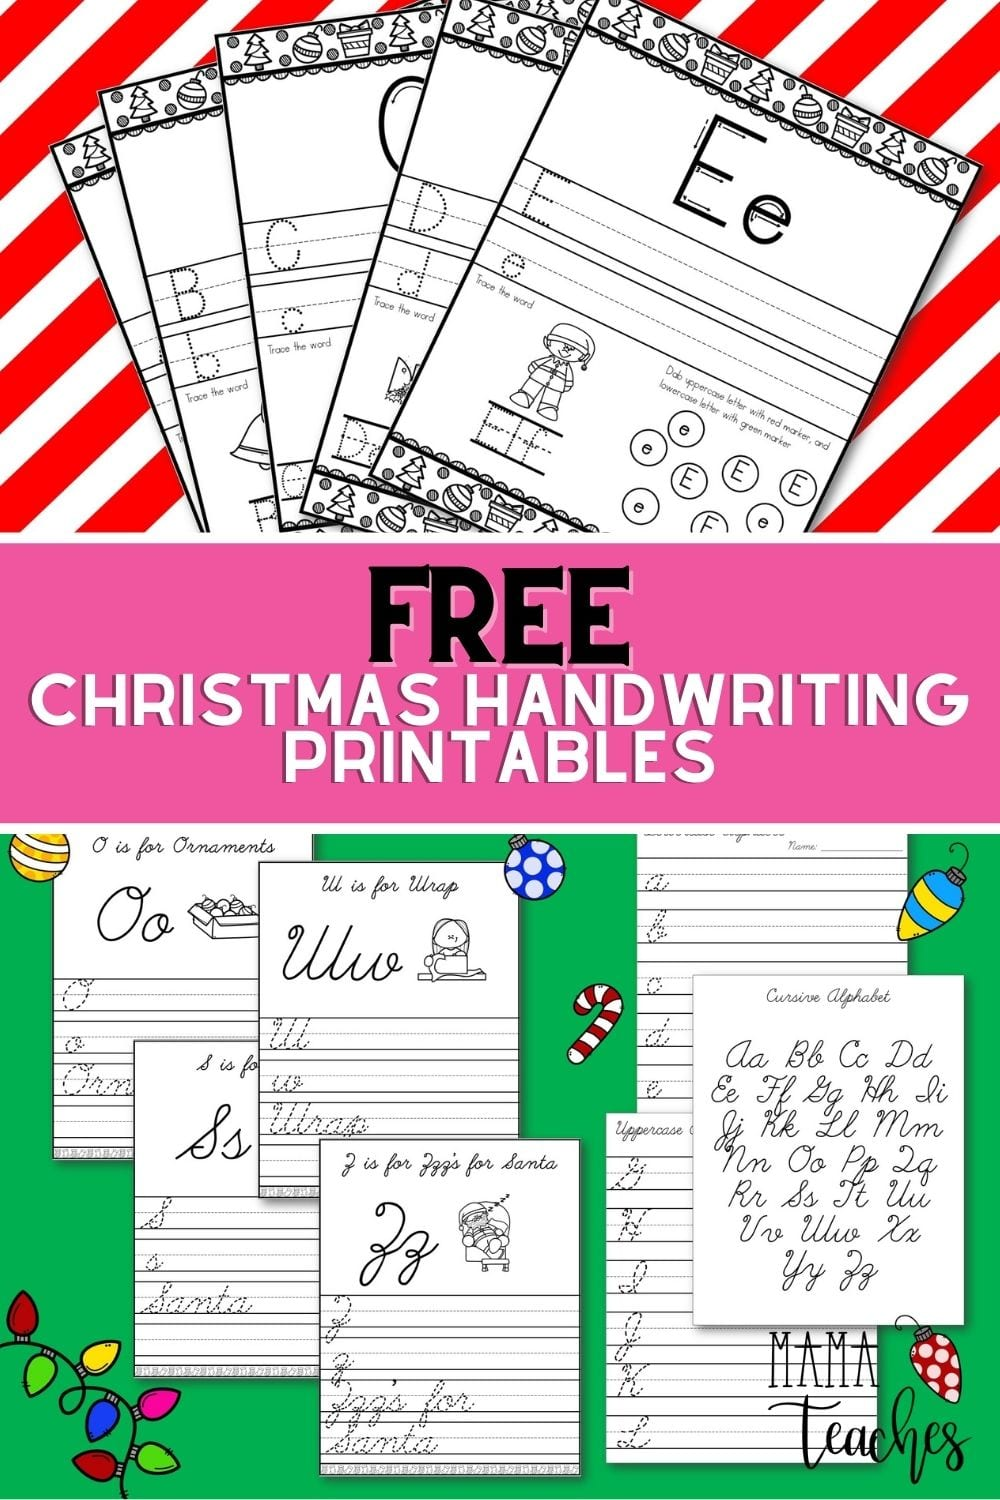 Free Christmas Alphabet Handwriting Printables in Print and Cursive Practice